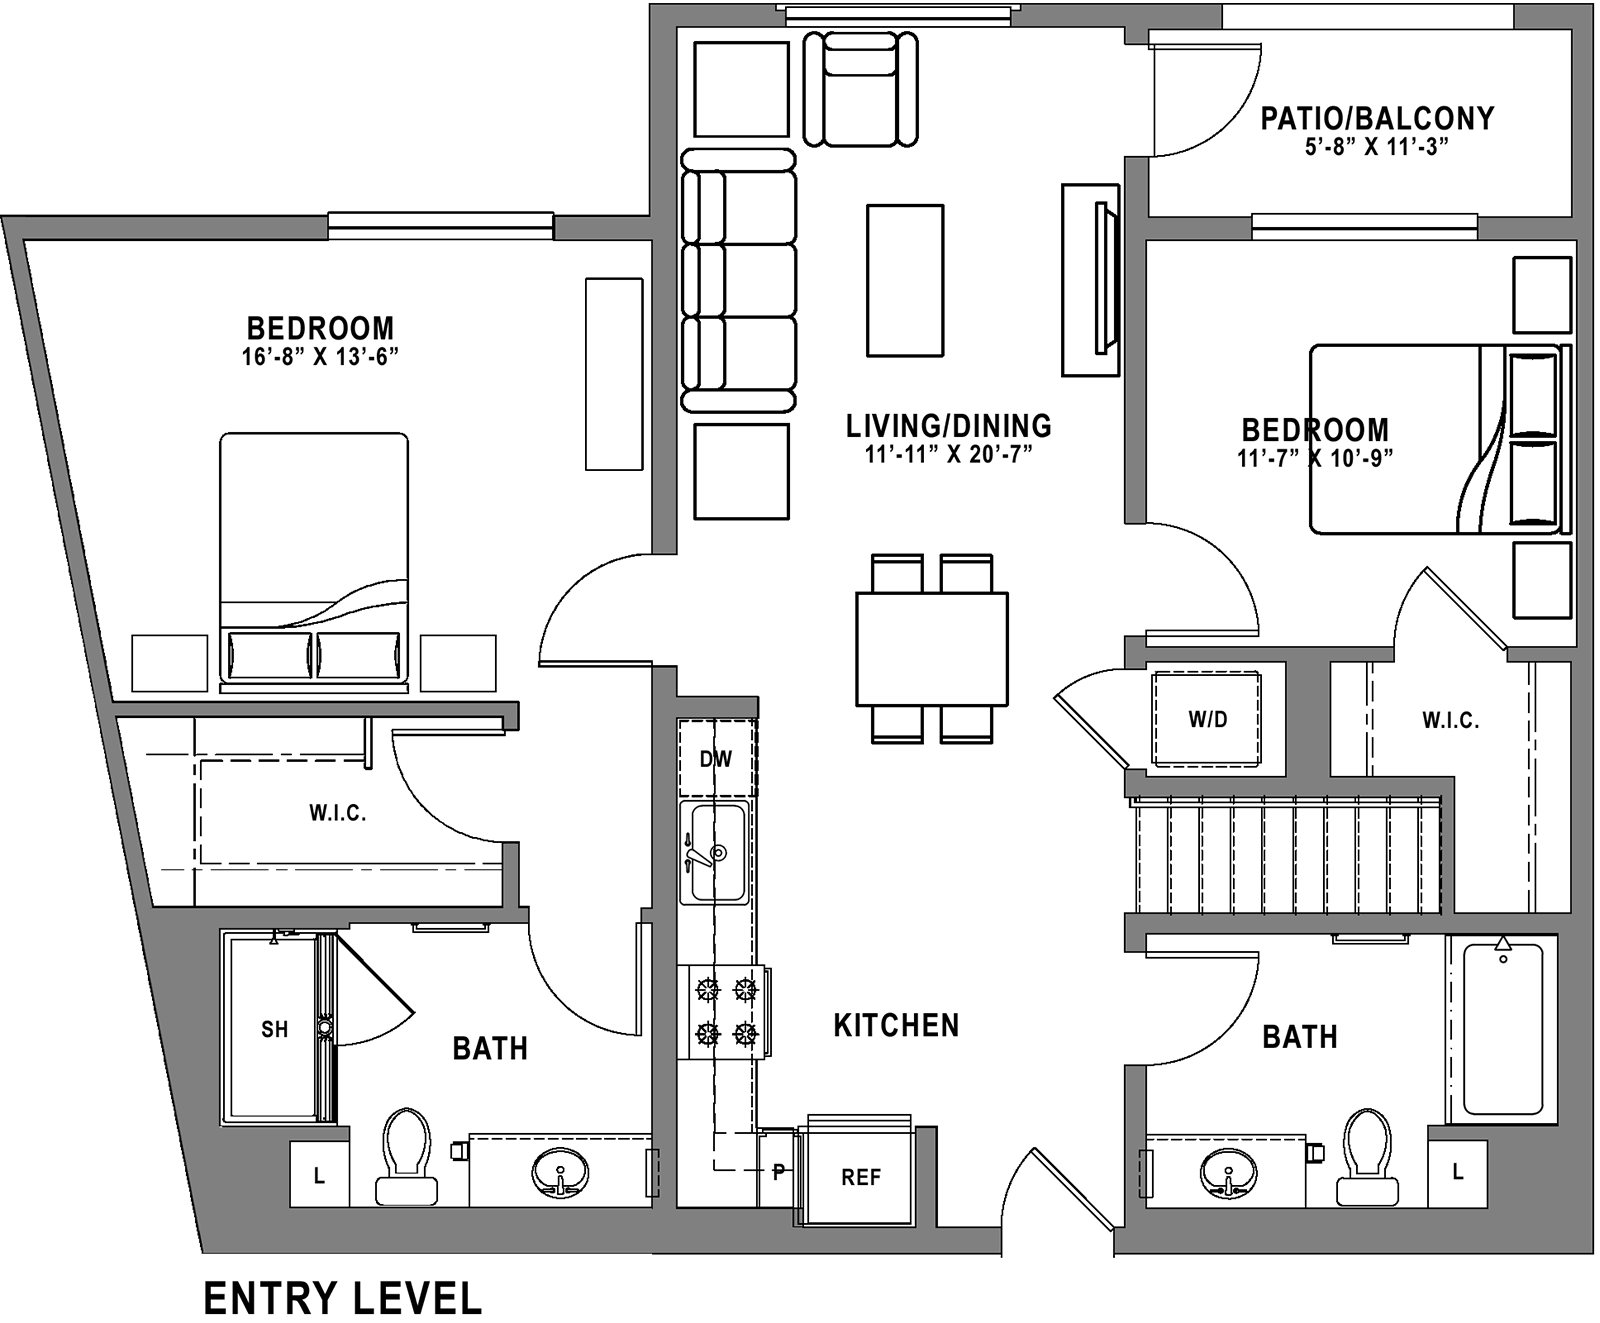 Plan B7 Loft - 2 Bedroom+ Loft, 2 Bath Floor Plan